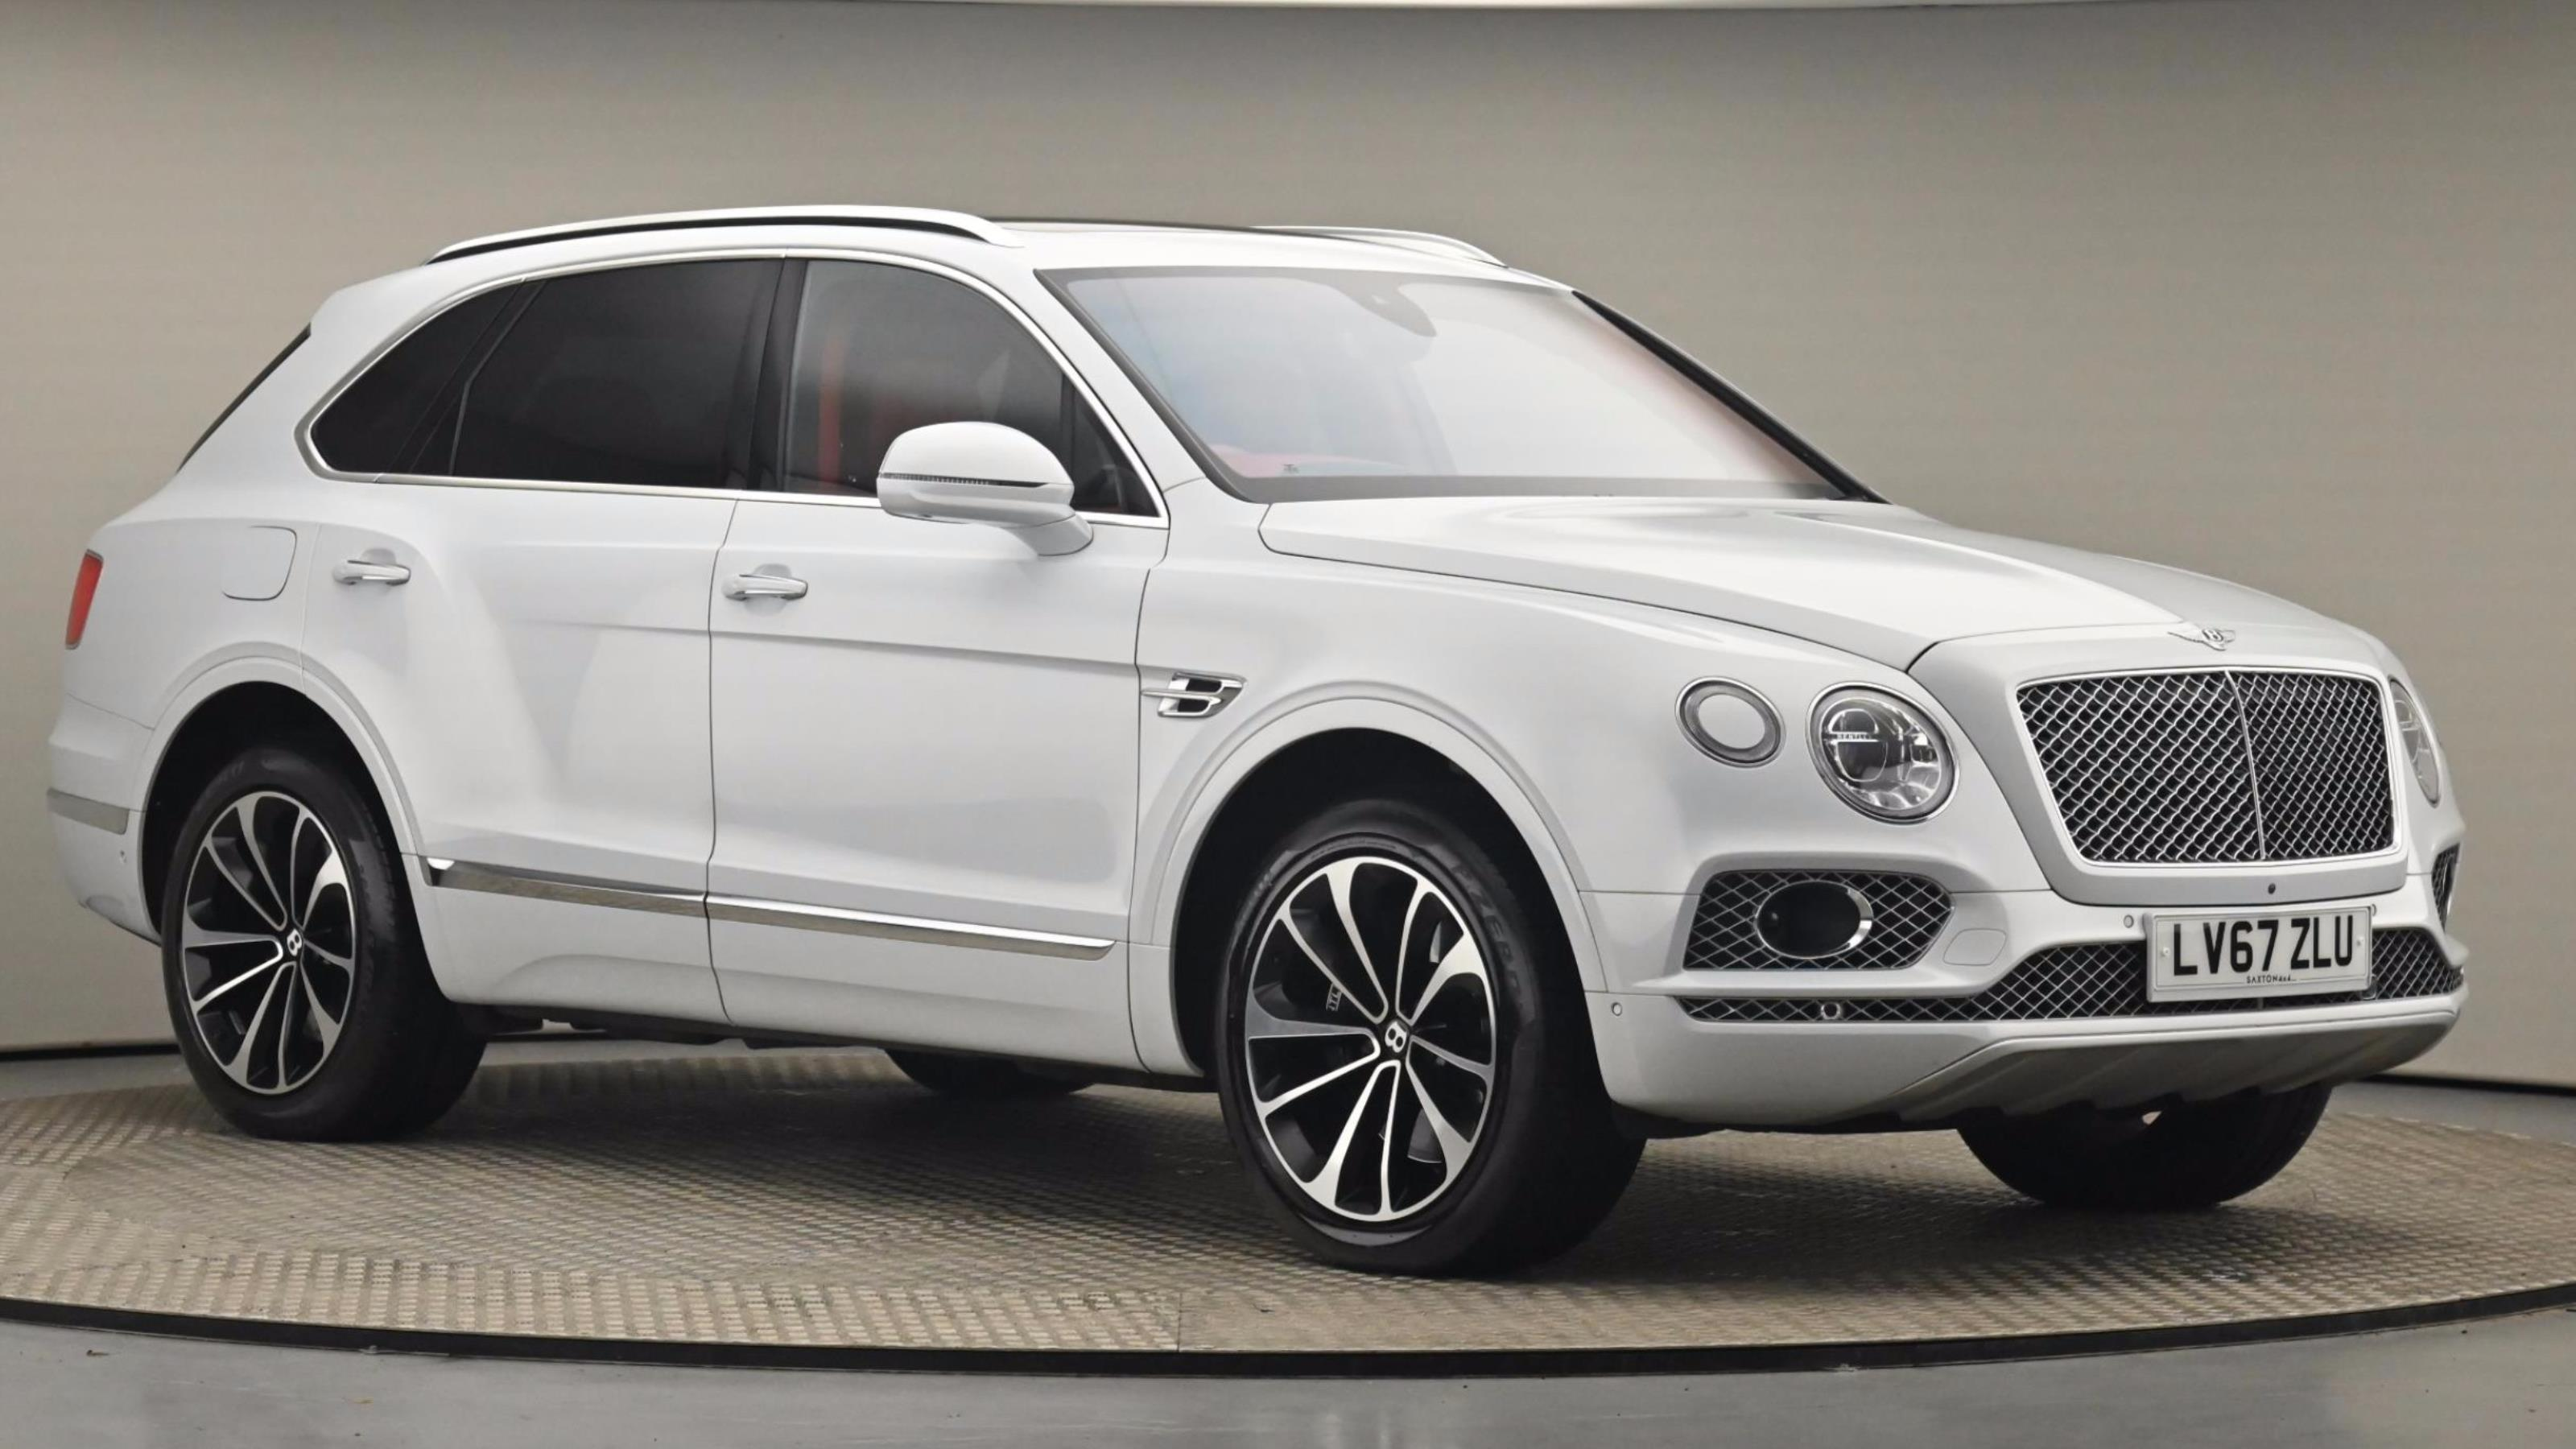 Used 2018 Bentley BENTAYGA 6.0 W12 5dr Auto at Saxton4x4